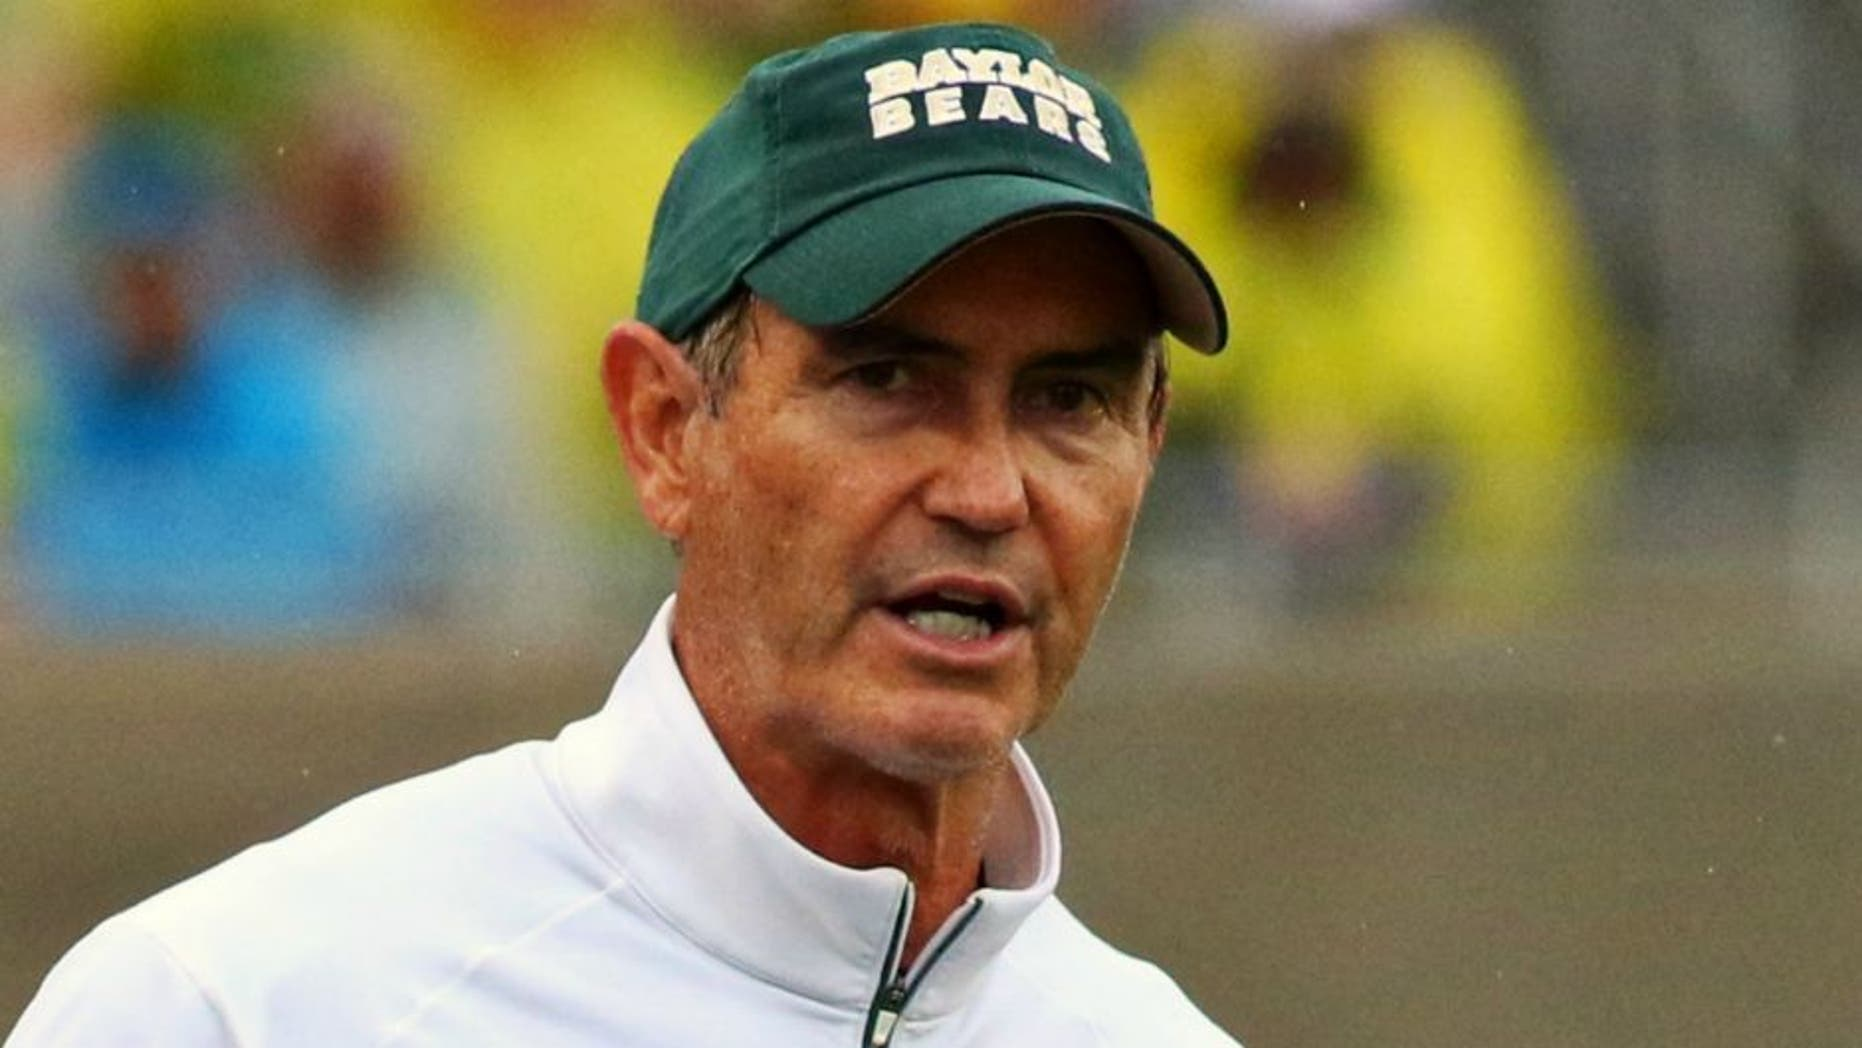 Oct 24, 2015; Waco, TX, USA; Baylor Bears head coach Art Briles against the Iowa State Cyclones during the second half at McLane Stadium. Baylor won 45-27. Mandatory Credit: Ray Carlin-USA TODAY Sports